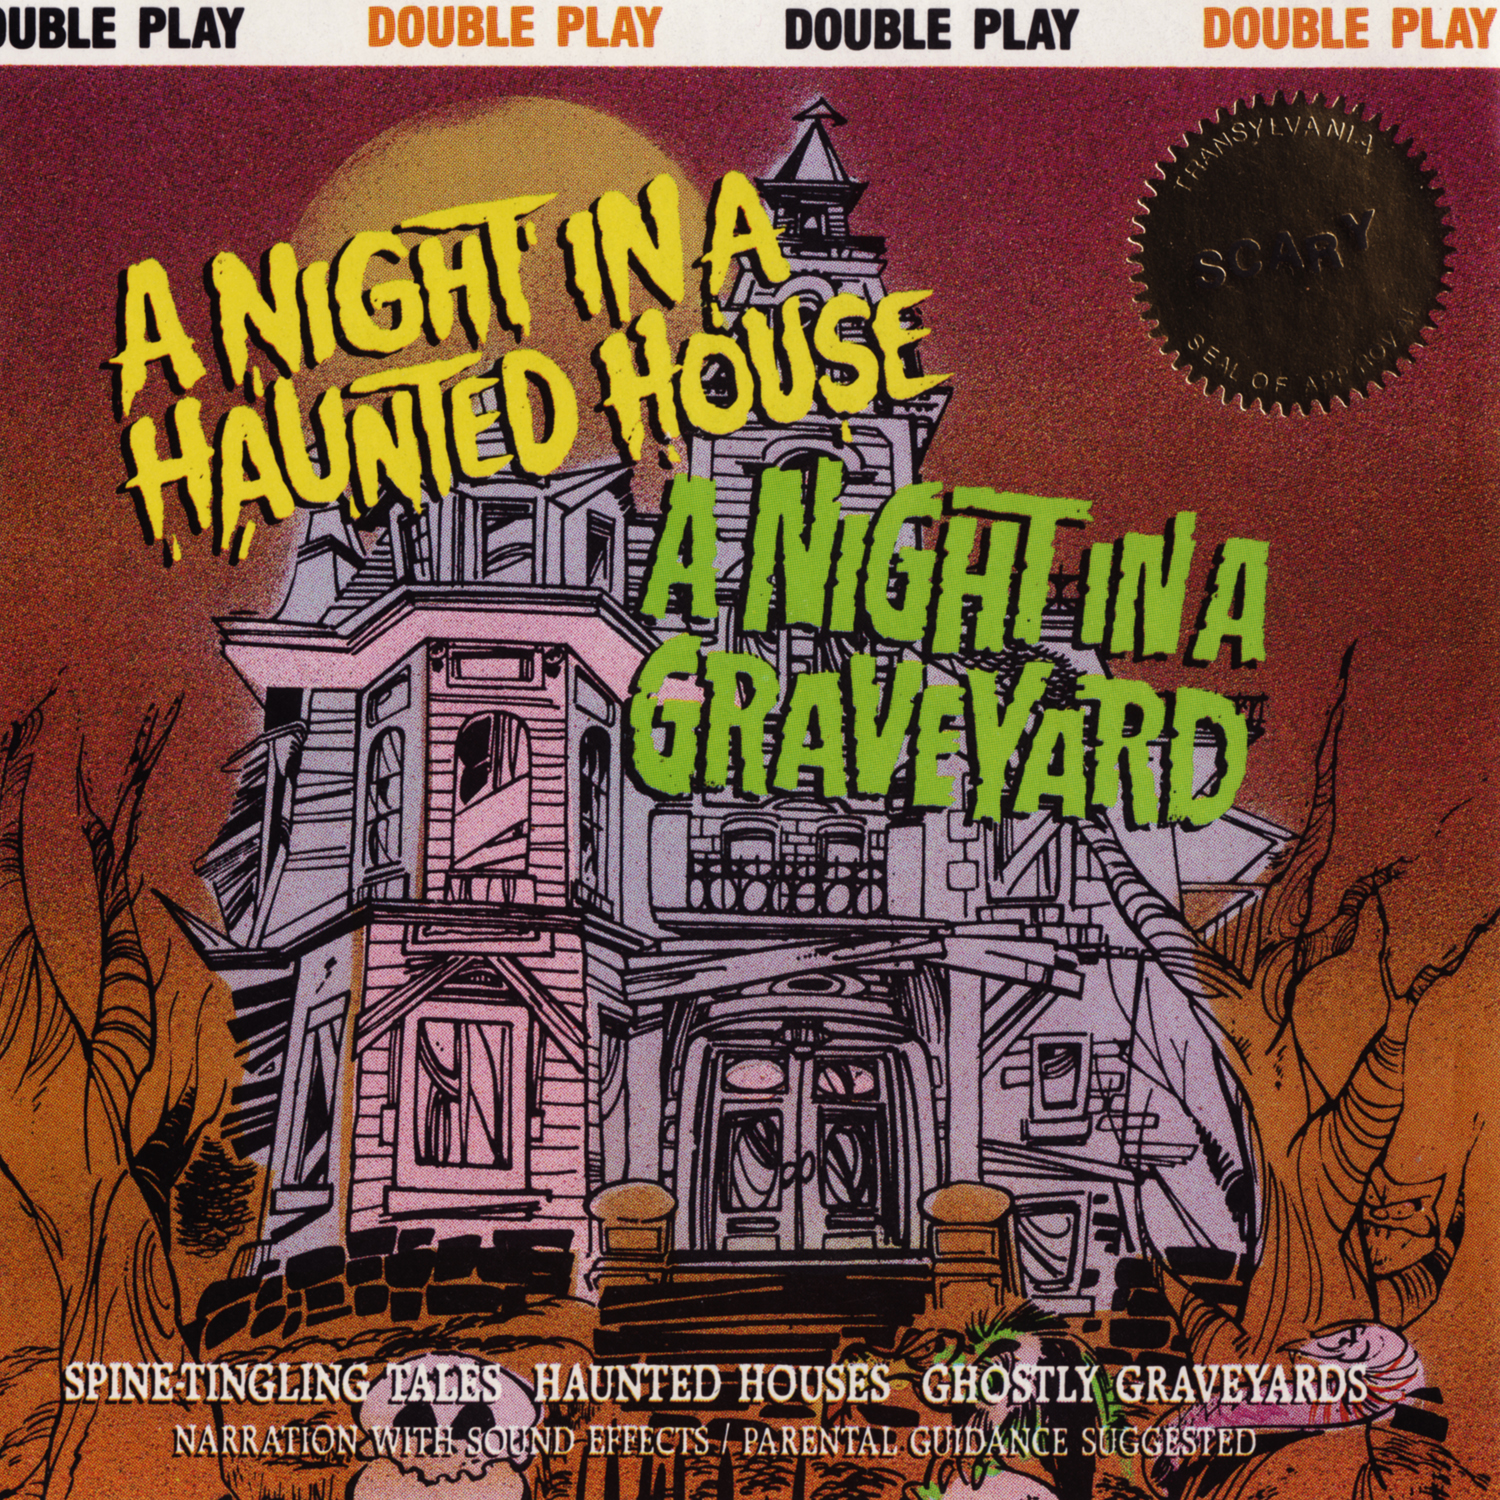 Scary Sounds of Halloween Blog: A Night In A Haunted House / A Night